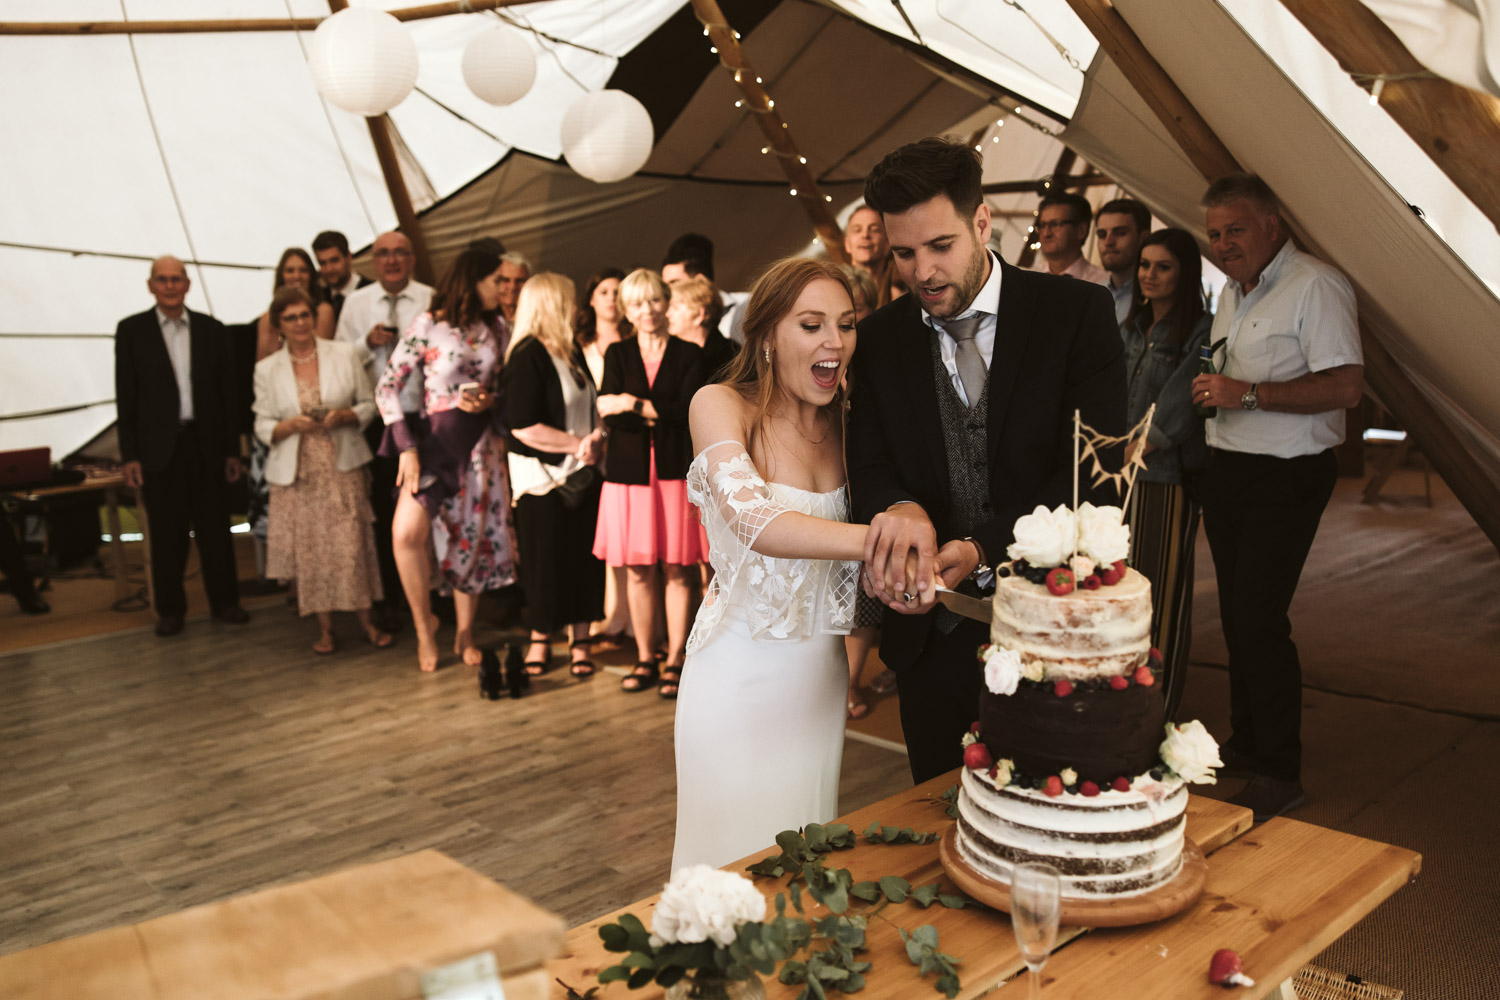 the couple are cutting the wedding cake surrounded by cheering guests